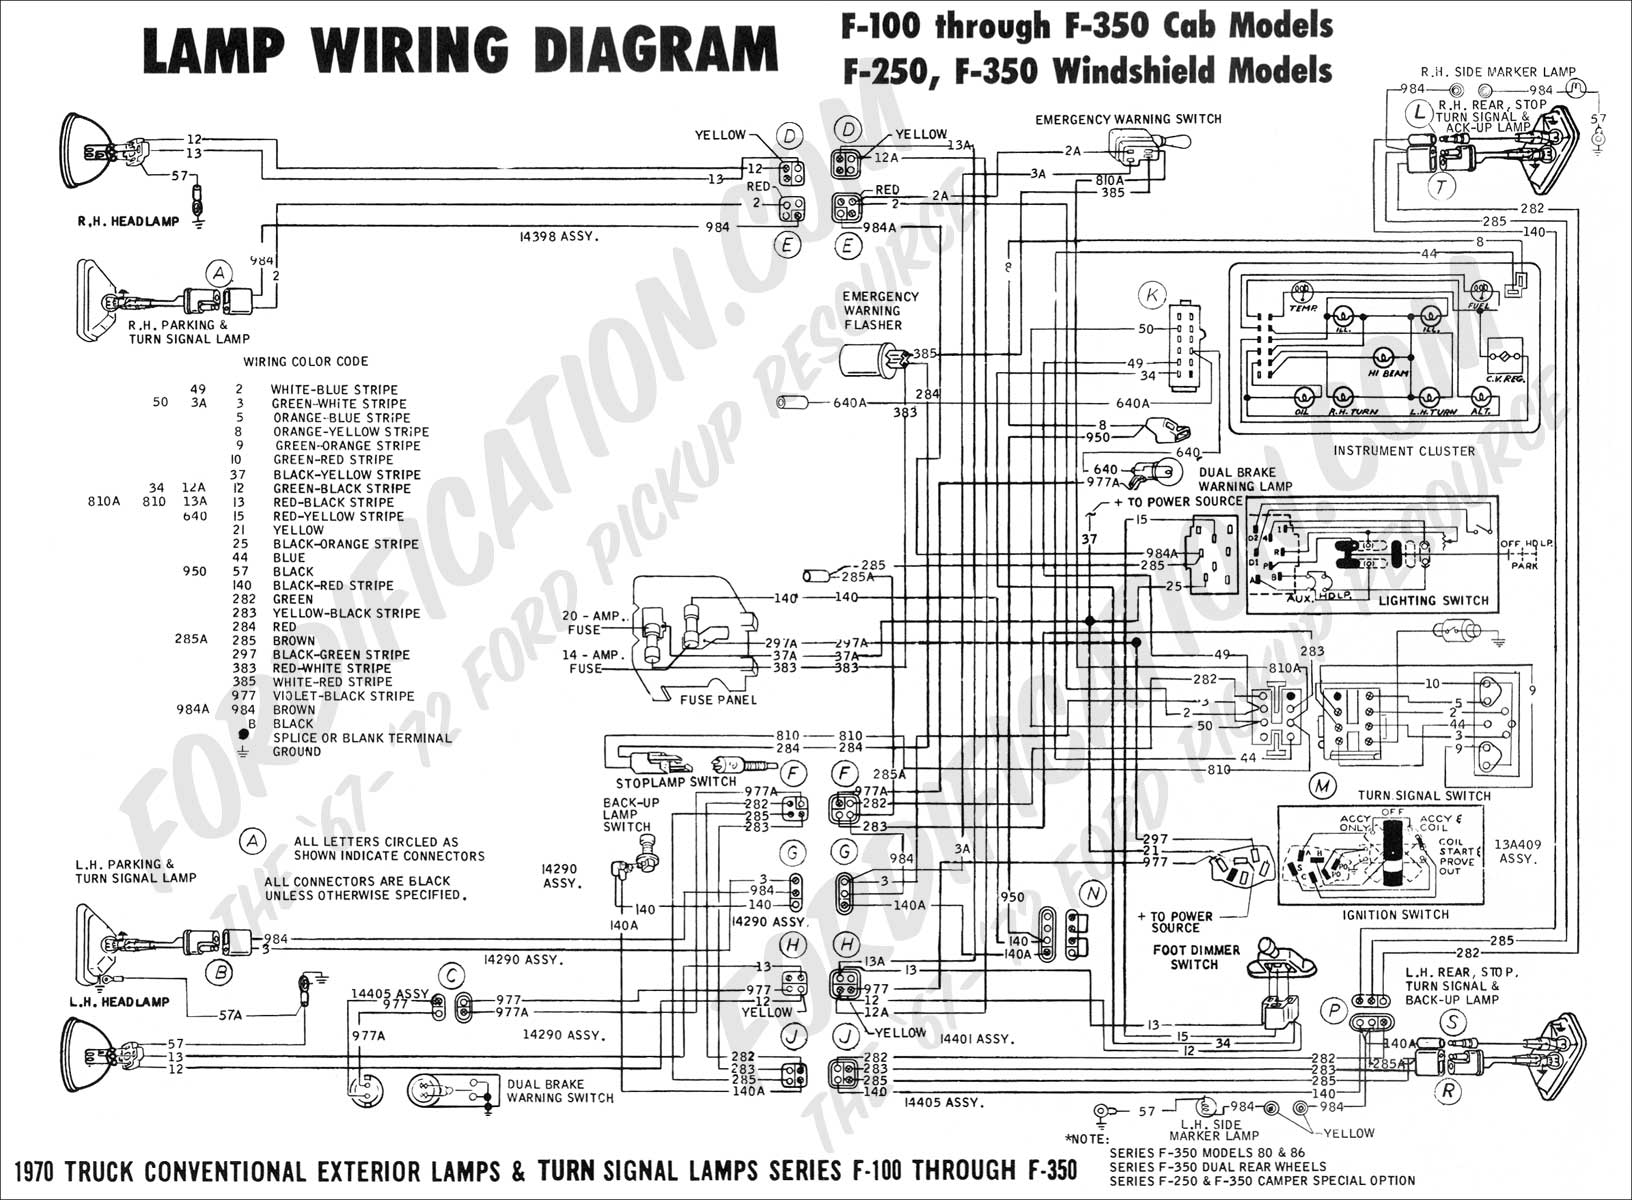 hight resolution of 1970 ford truck wiring harness wiring diagram third level f15 wiring harness 1970 ford truck wire